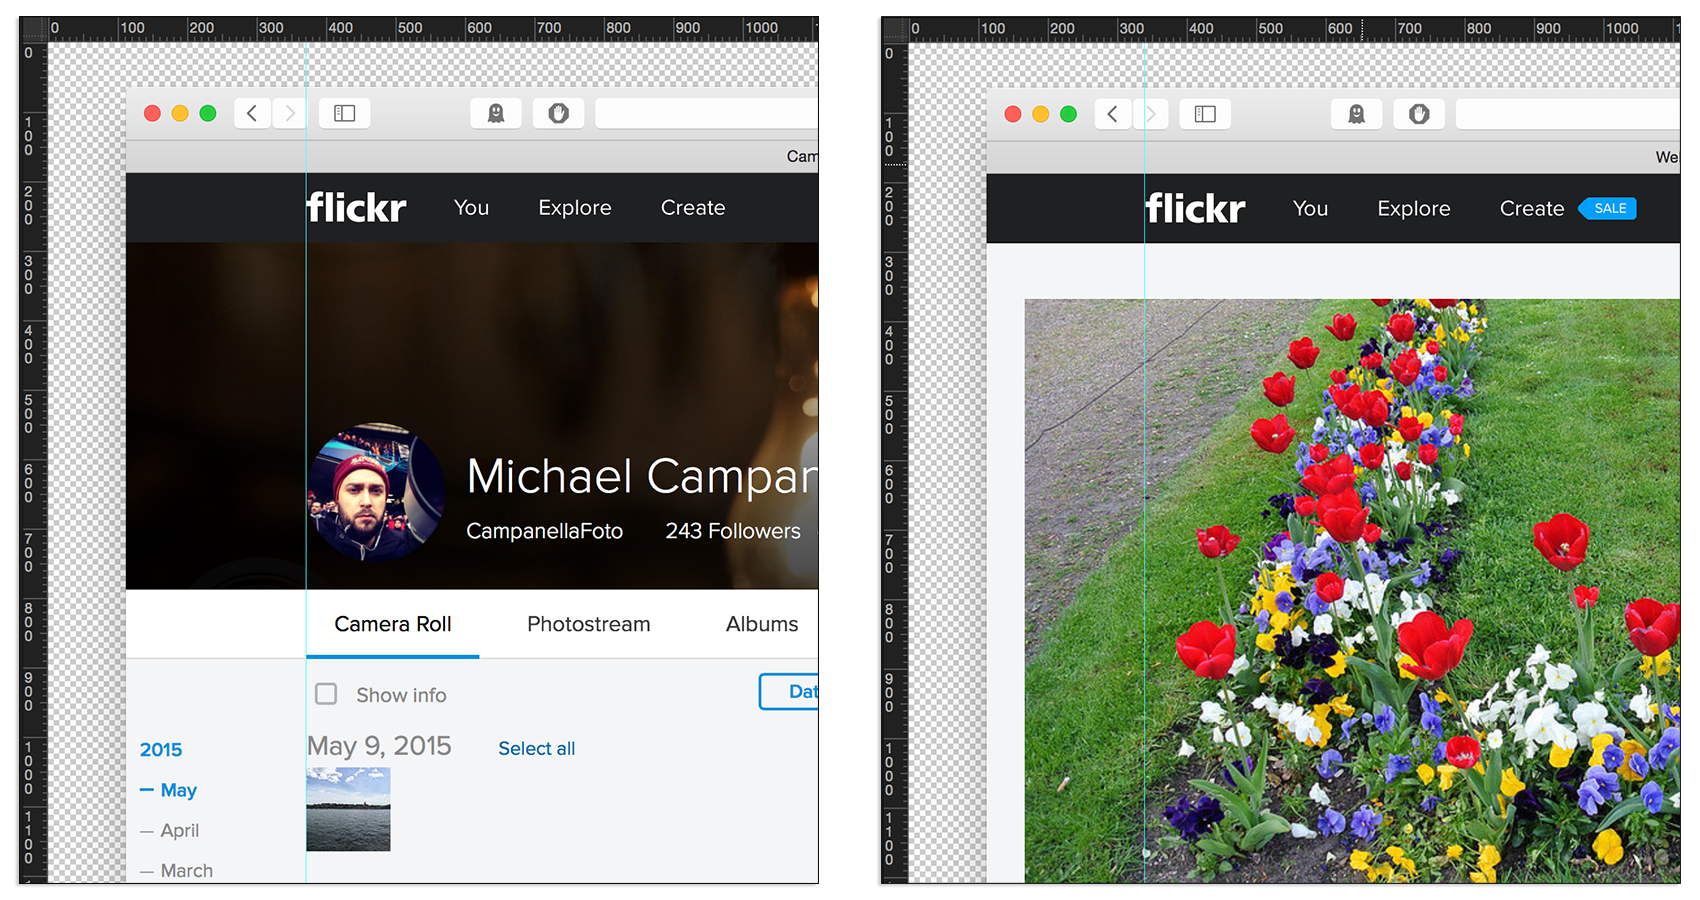 Flickr 4.0 - Menu Alignment